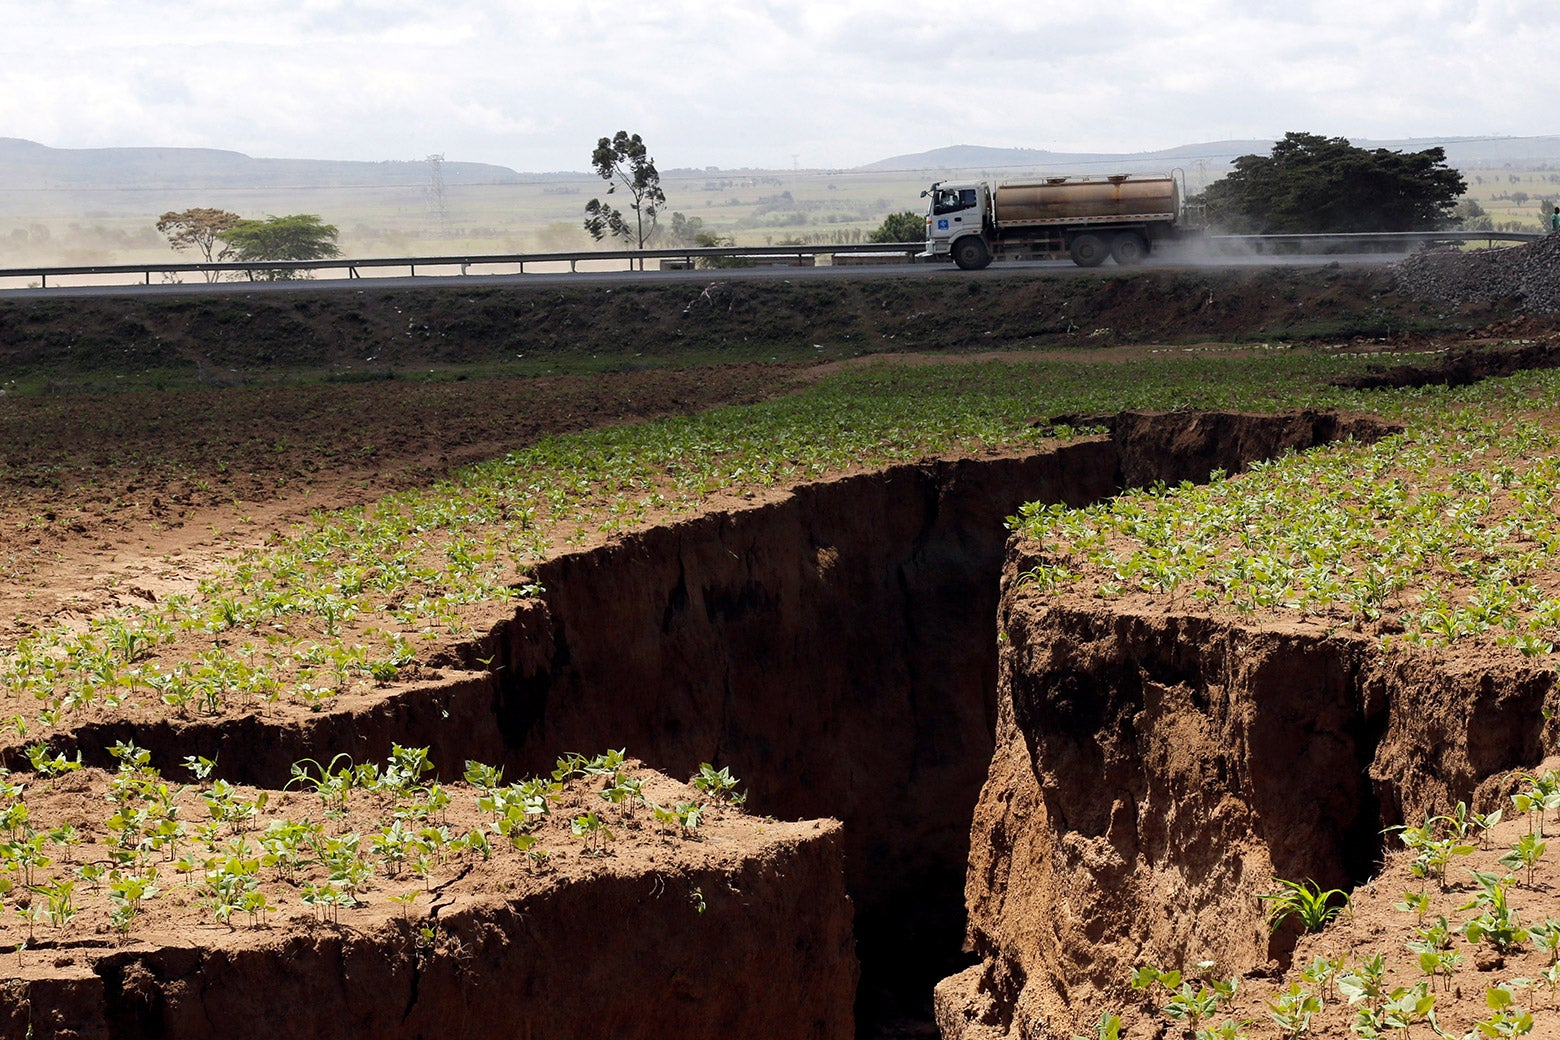 A tanker drives near a chasm suspected to have been caused by a heavy downpour along an underground fault line near the Rift Valley town of Mai-Mahiu, Kenya on 28, 2018.